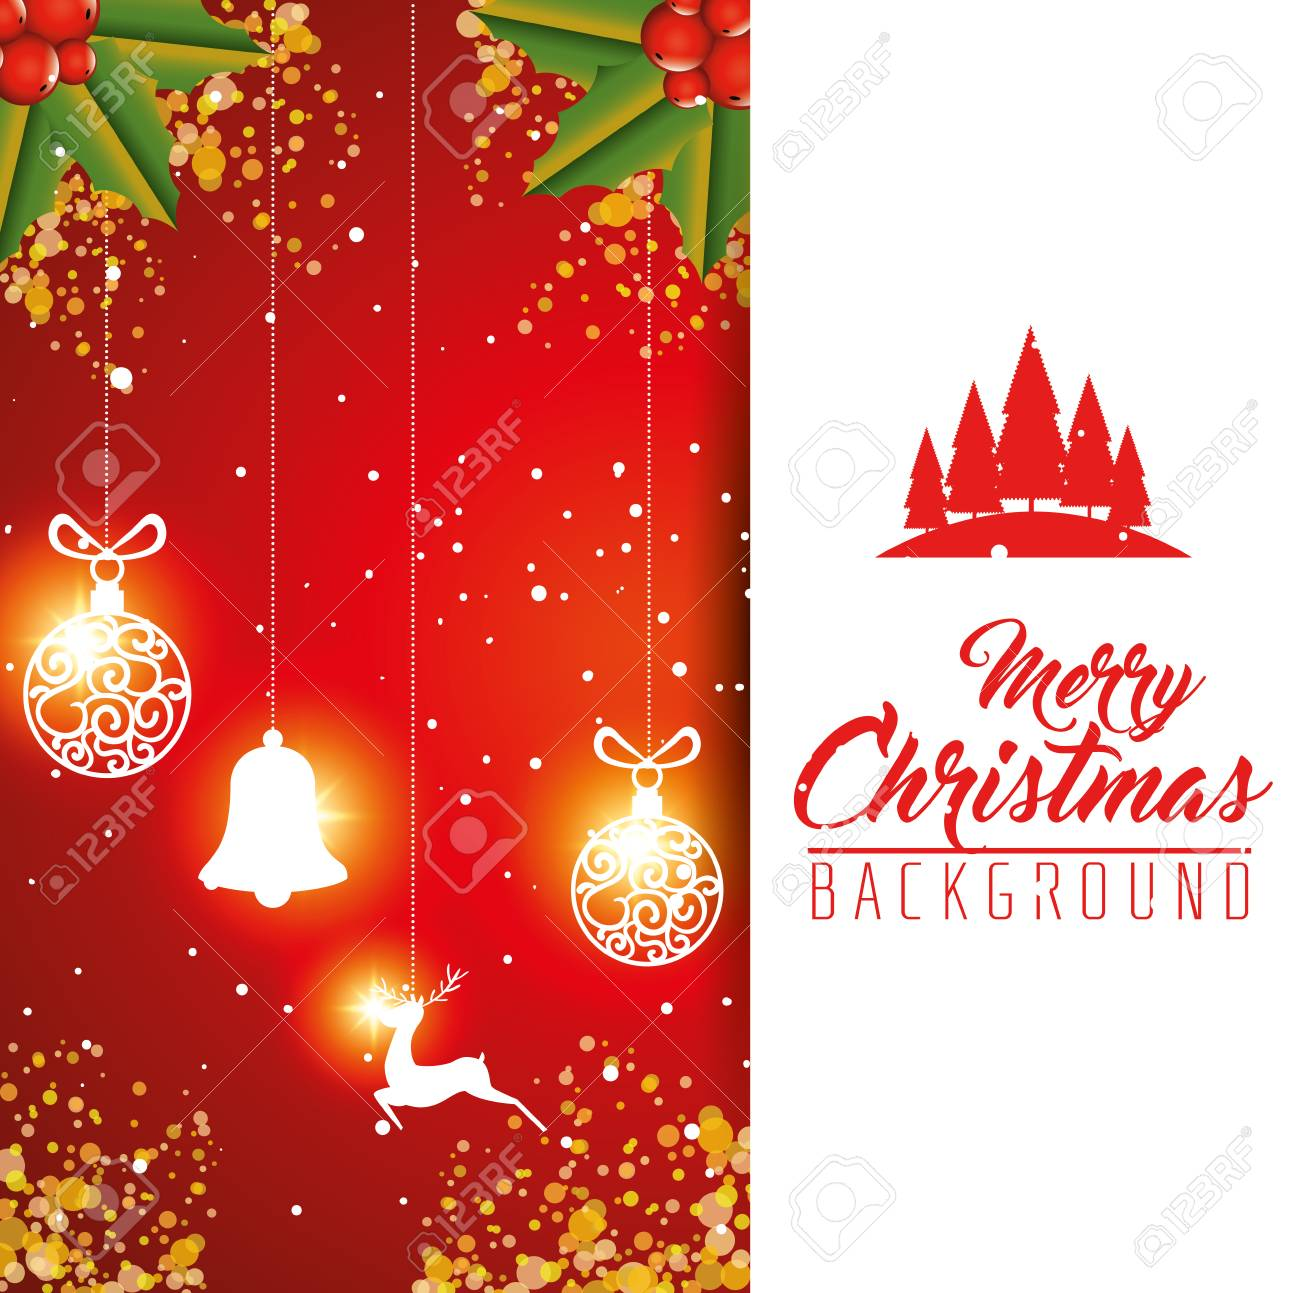 Colorful Christmas Background Design.Colorful And Bright Merry Christmas Background Vector Illustration